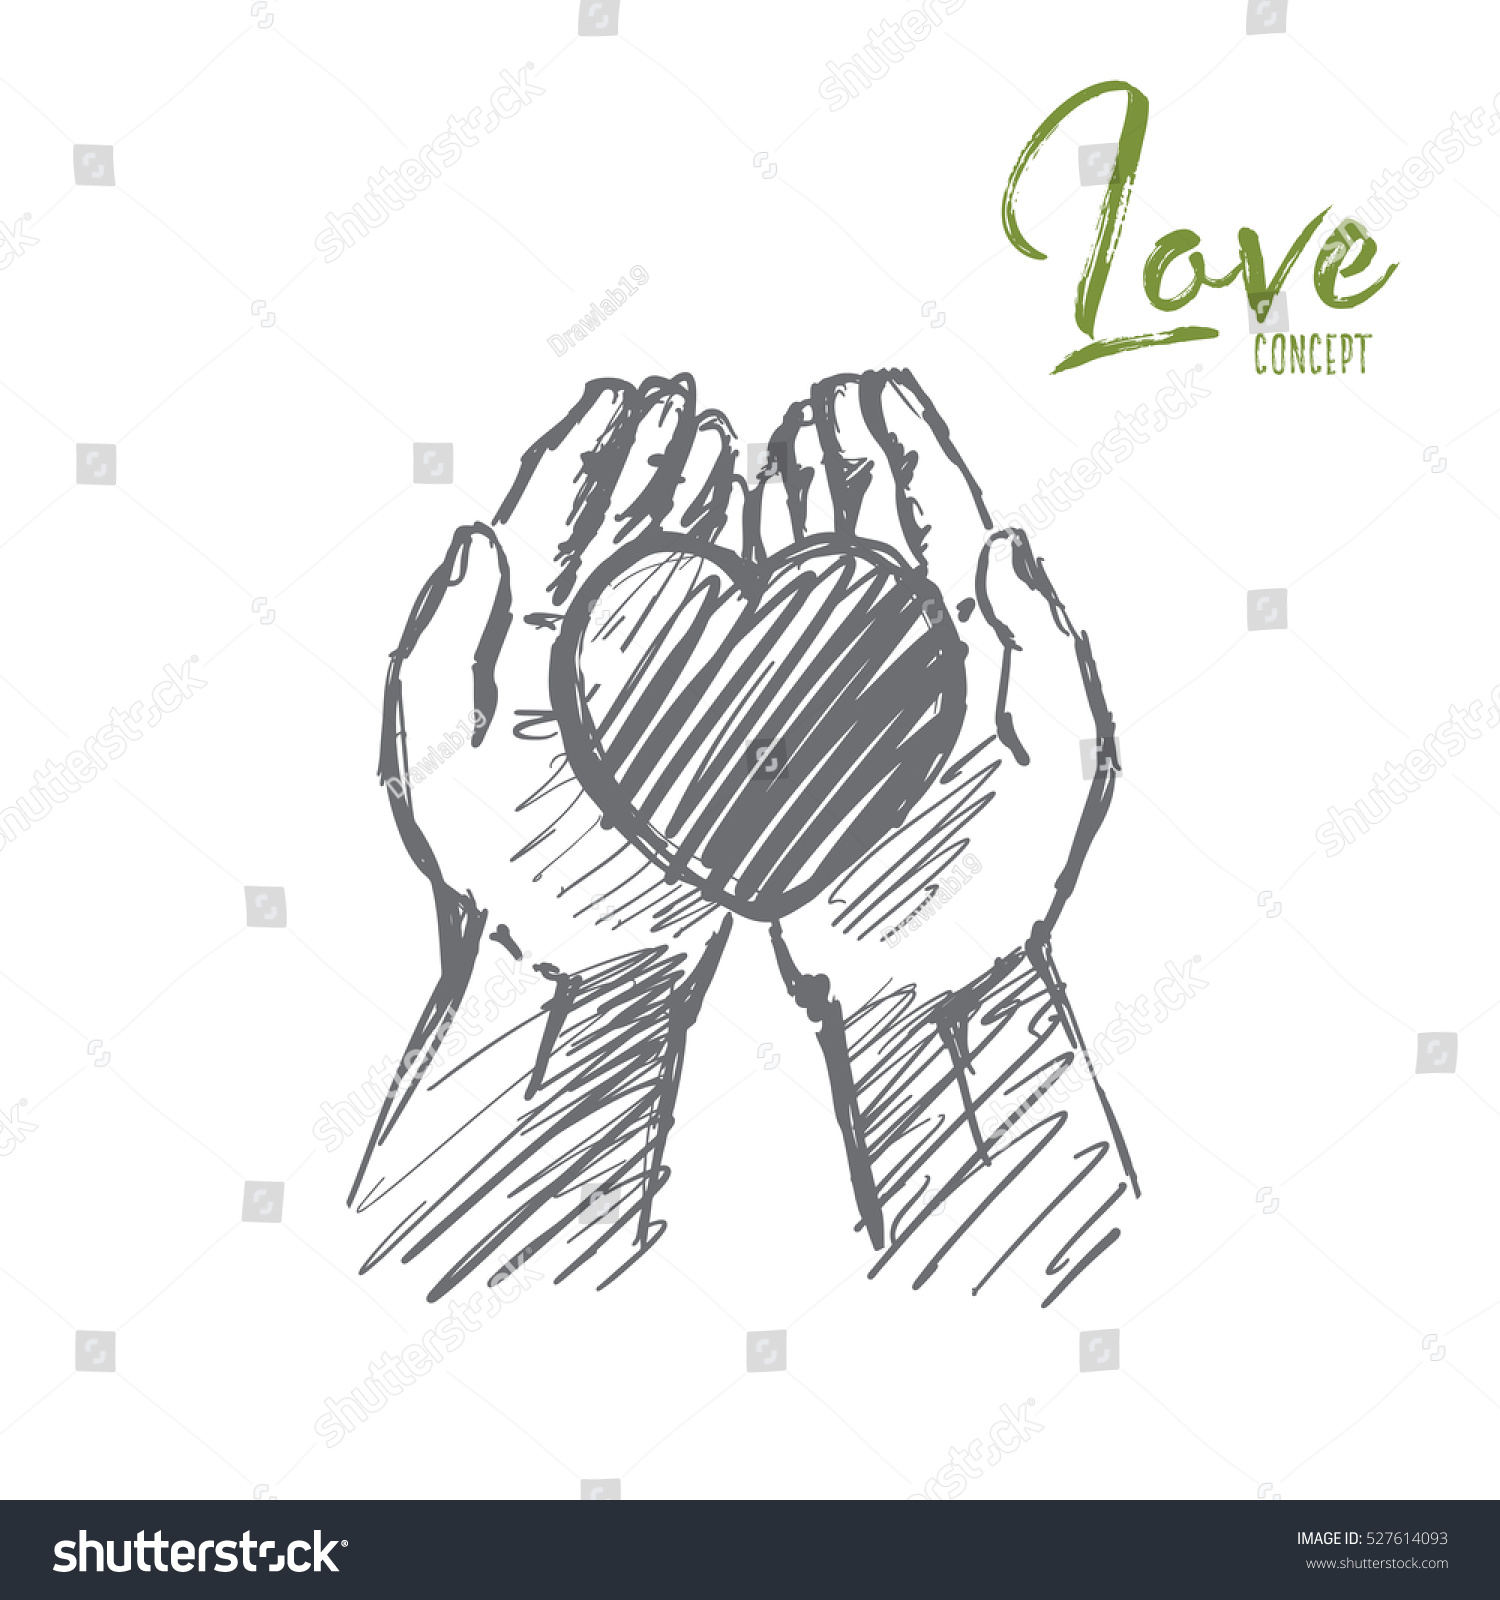 Vector hand drawn love concept sketch heart in caring human palms lettering love concept